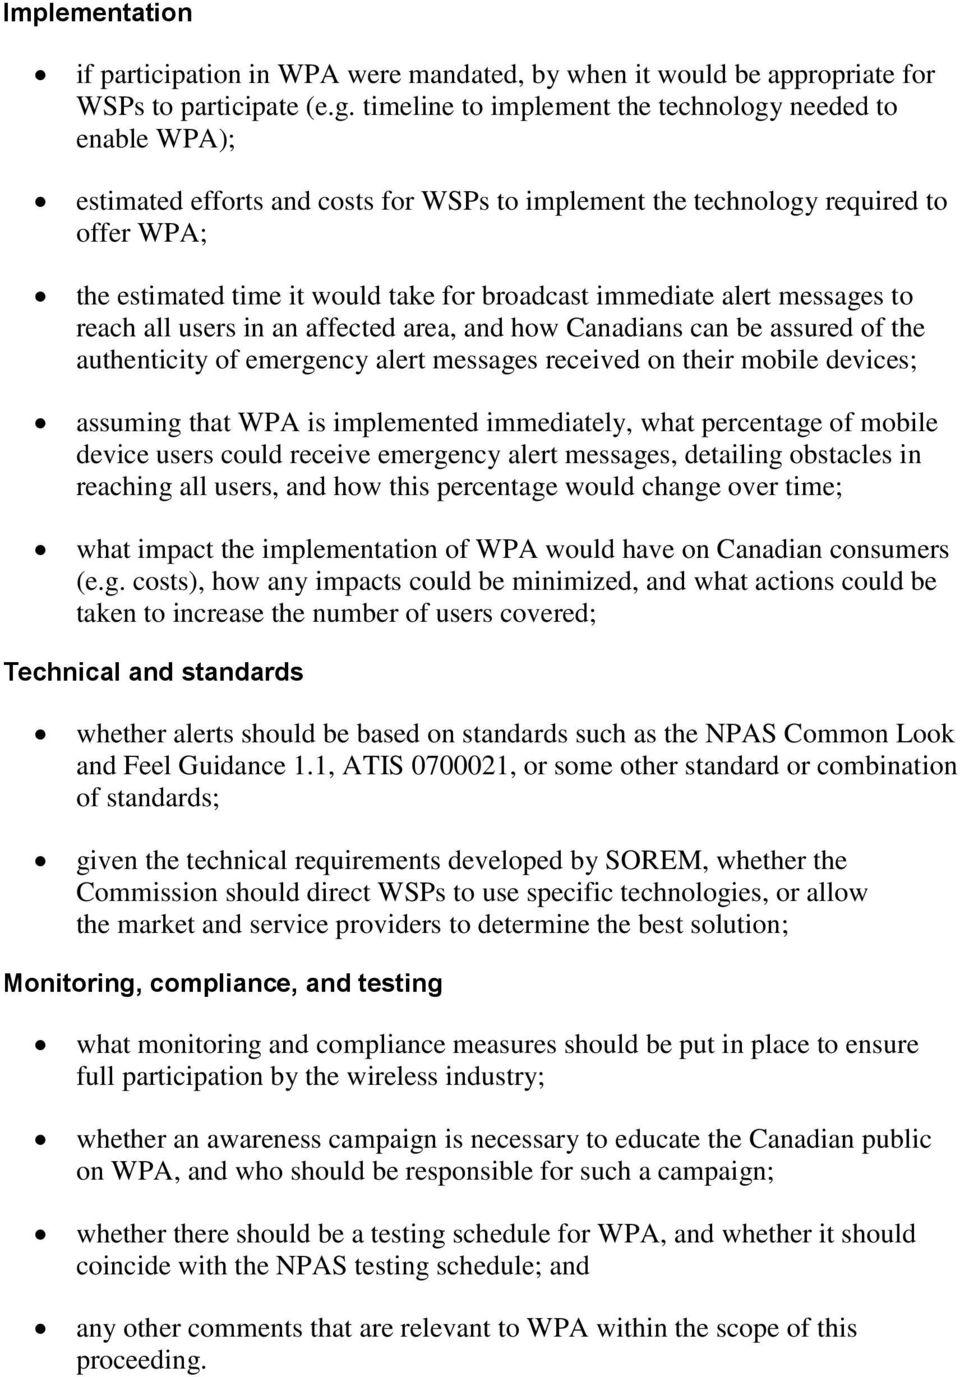 immediate alert messages to reach all users in an affected area, and how Canadians can be assured of the authenticity of emergency alert messages received on their mobile devices; assuming that WPA